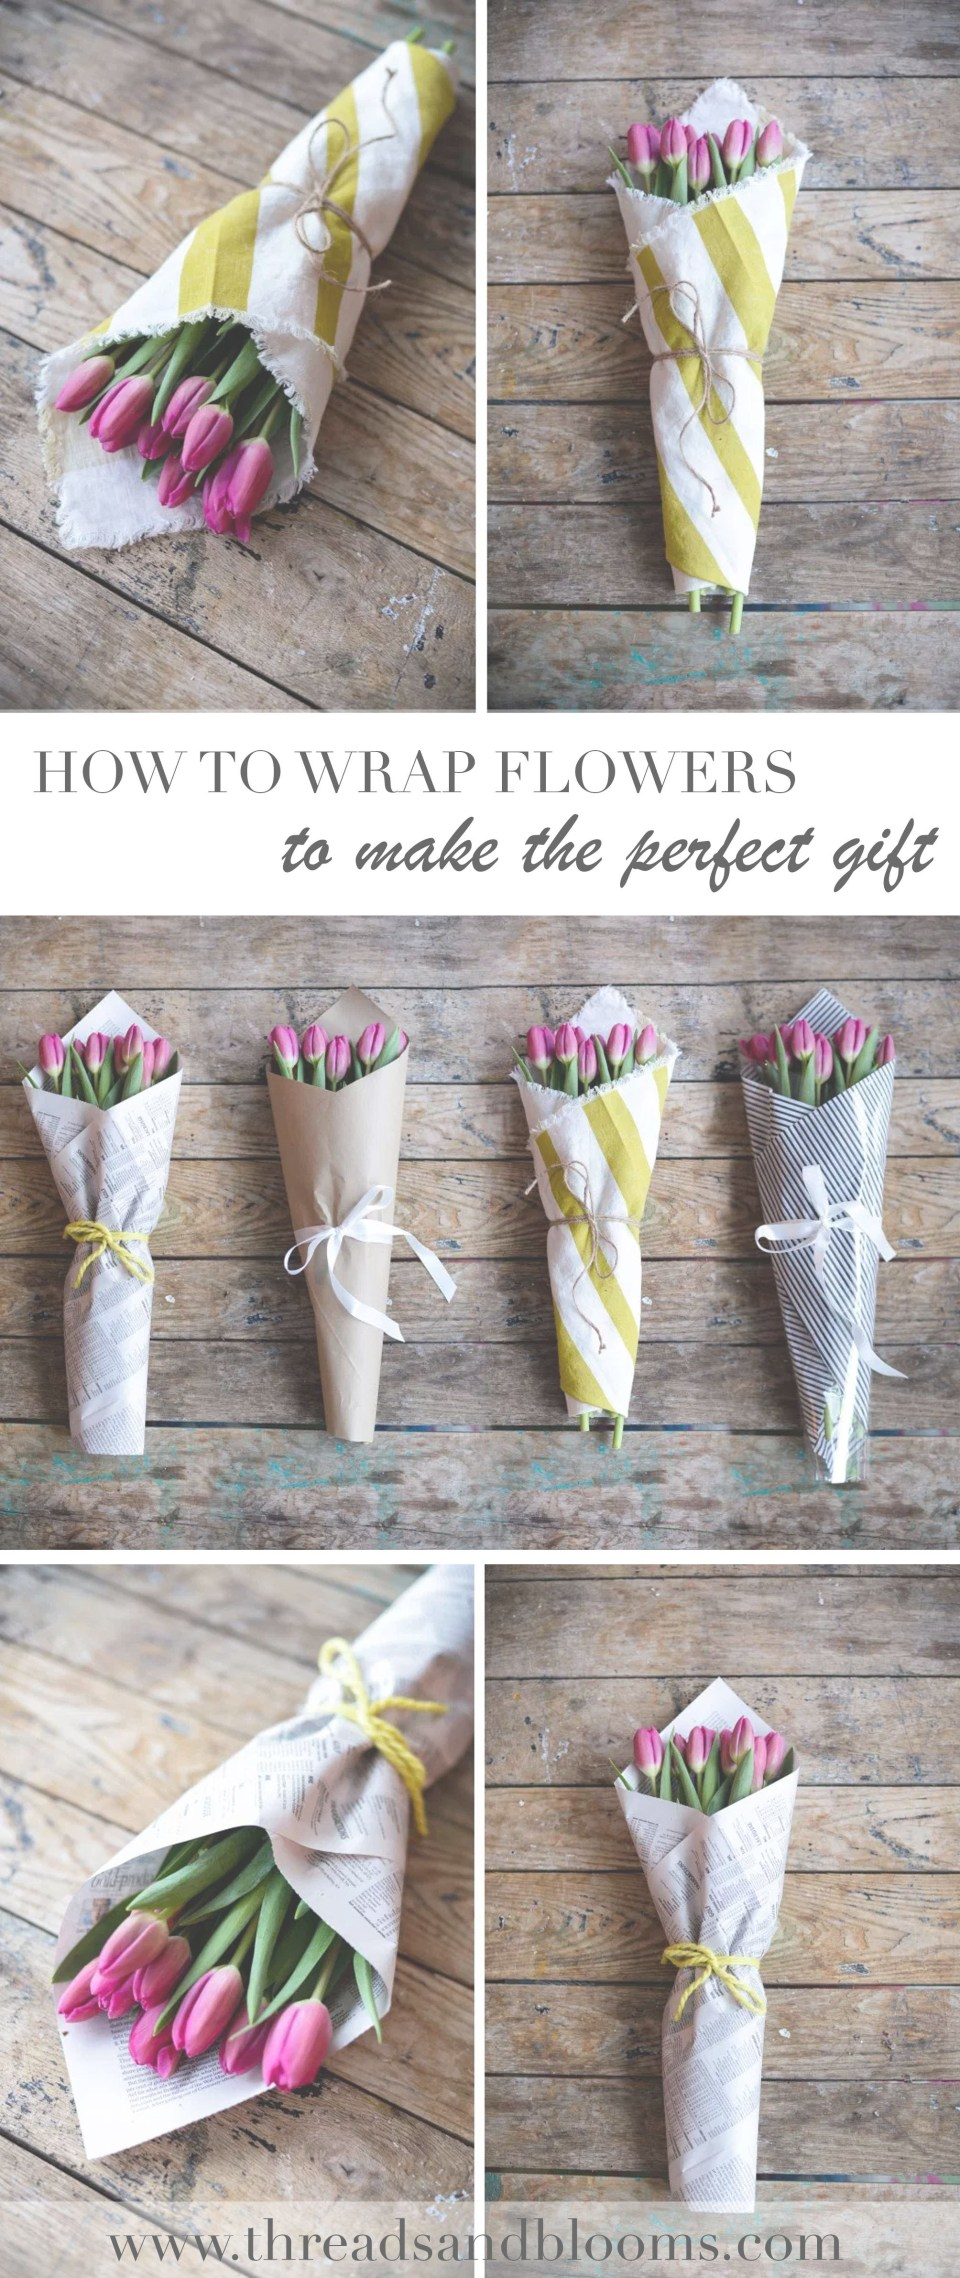 How to Wrap Flowers